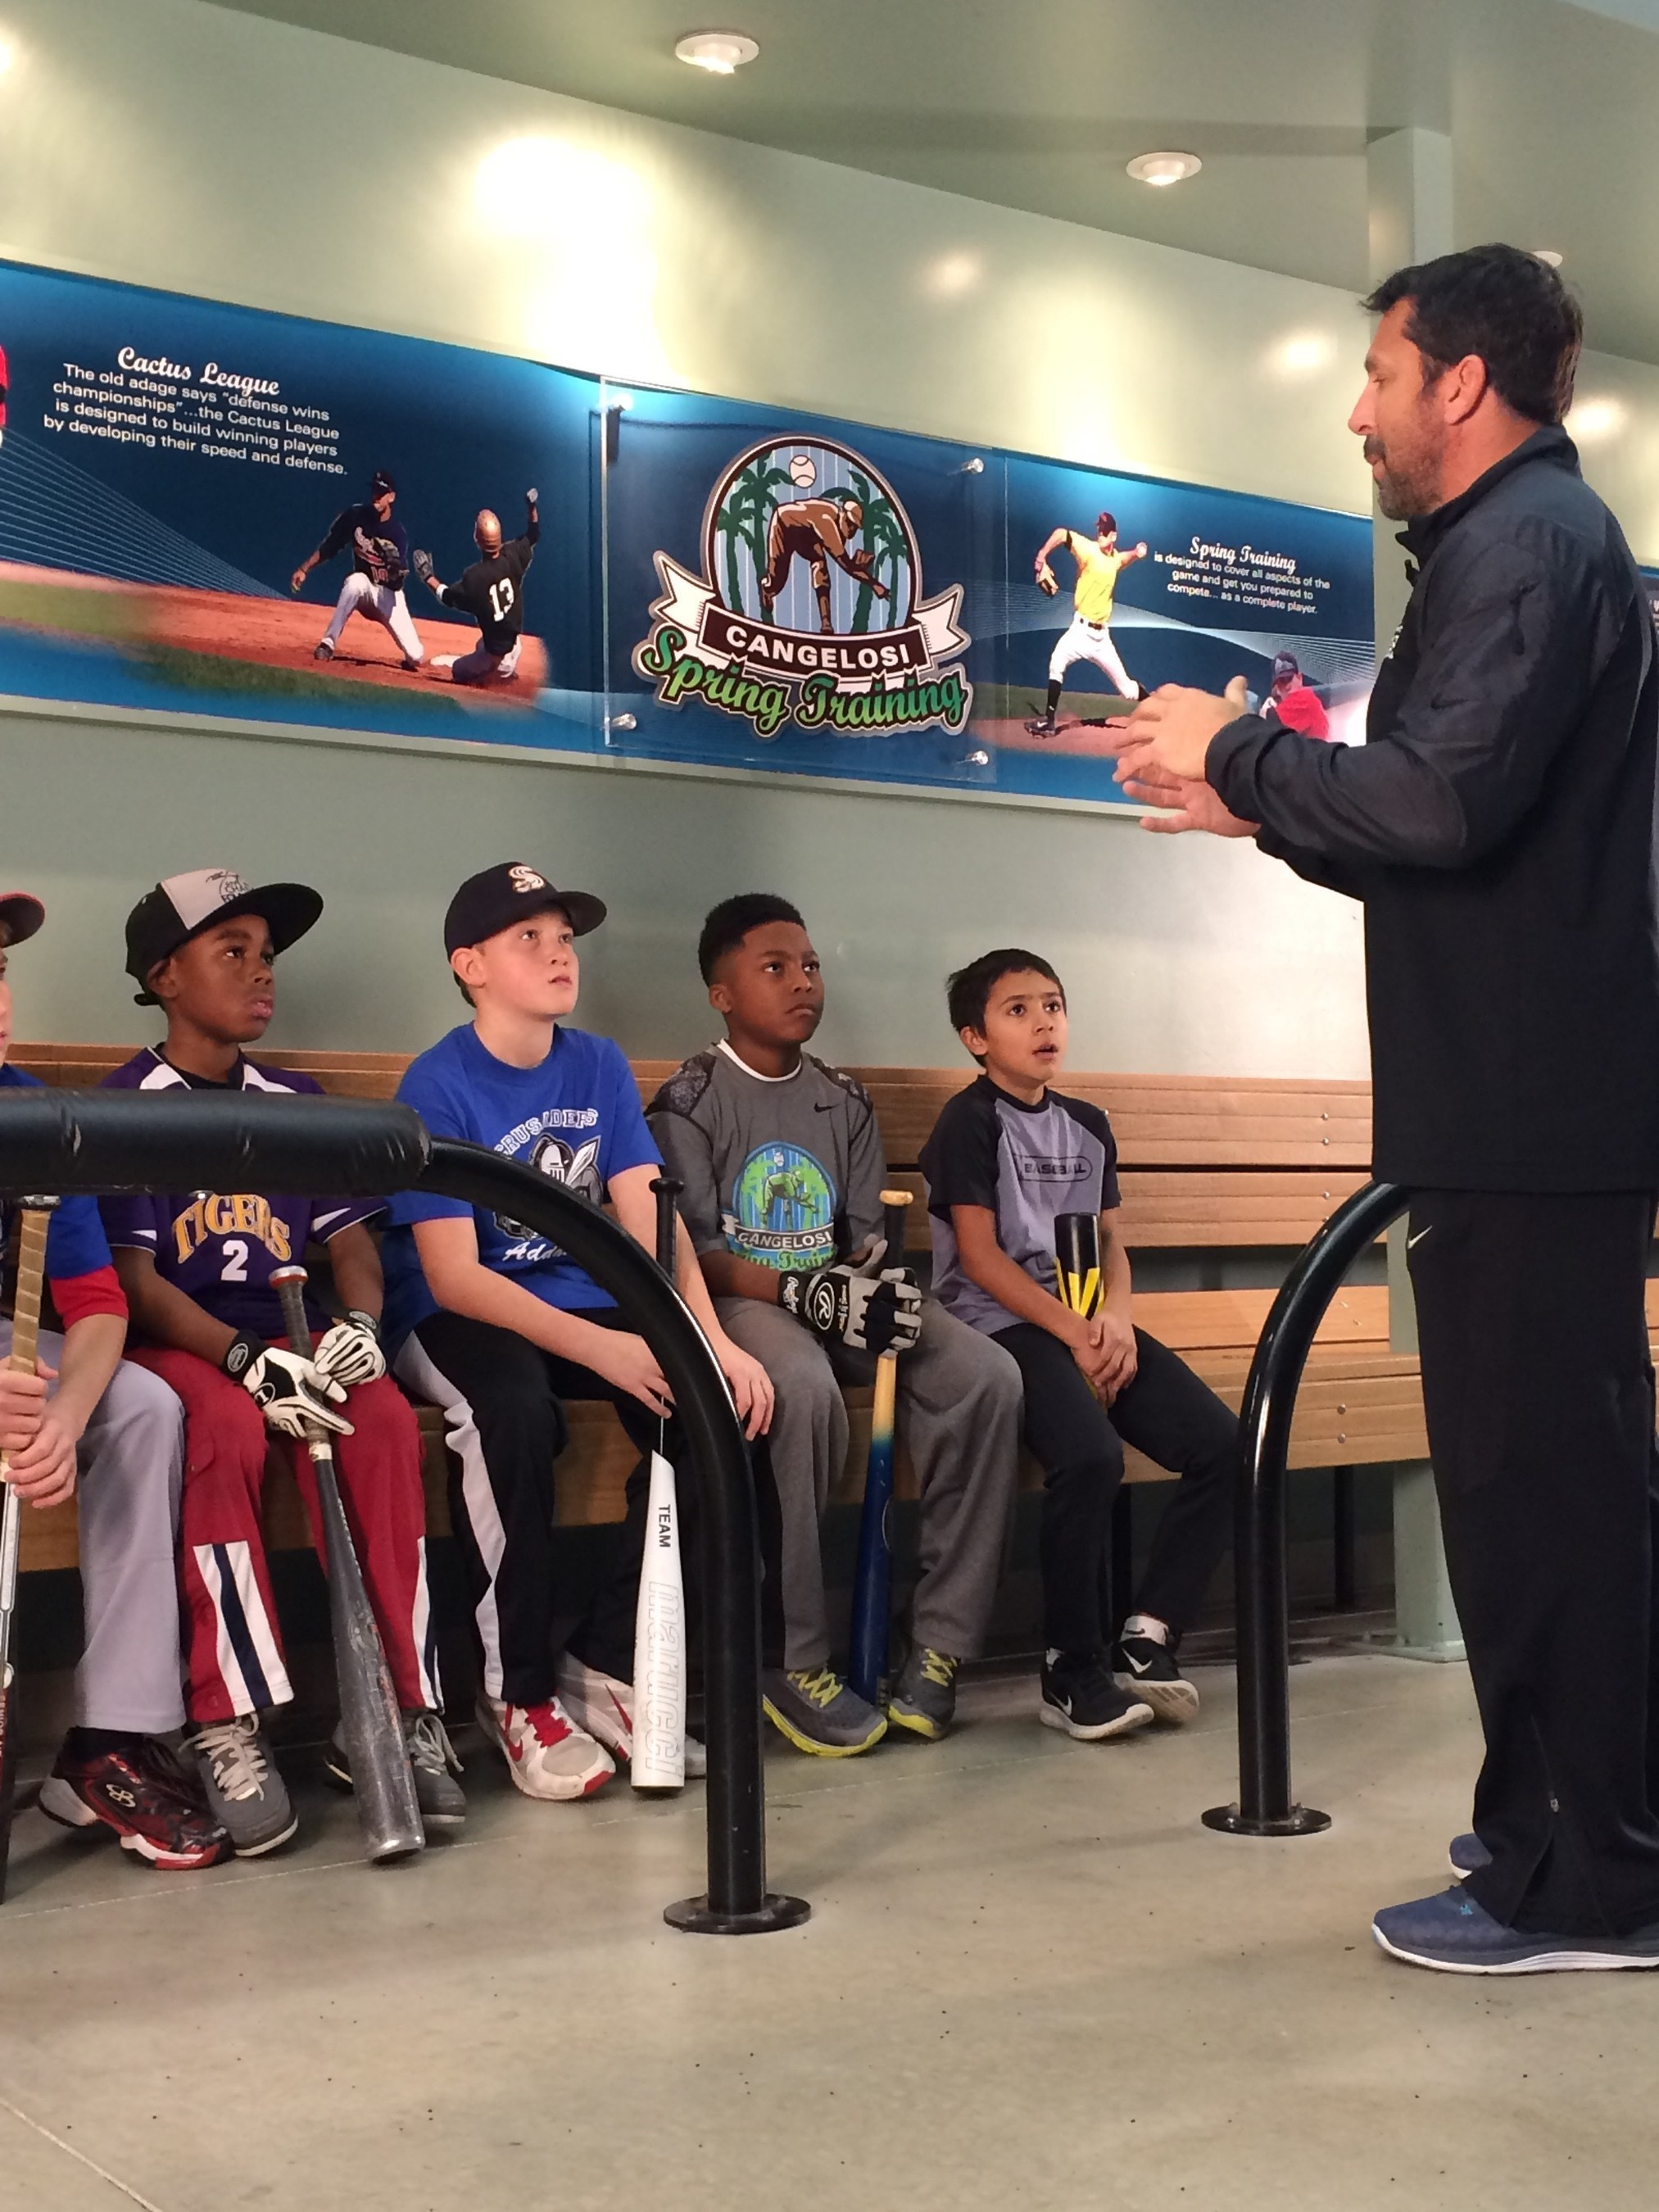 John Cangelosi encouraging young players at the Bo Jackson's Elite Sports Facility in Lockport, IL; the legacy of player development continues with a new facility slated to open in Hilliard, OH in fall of 2016.